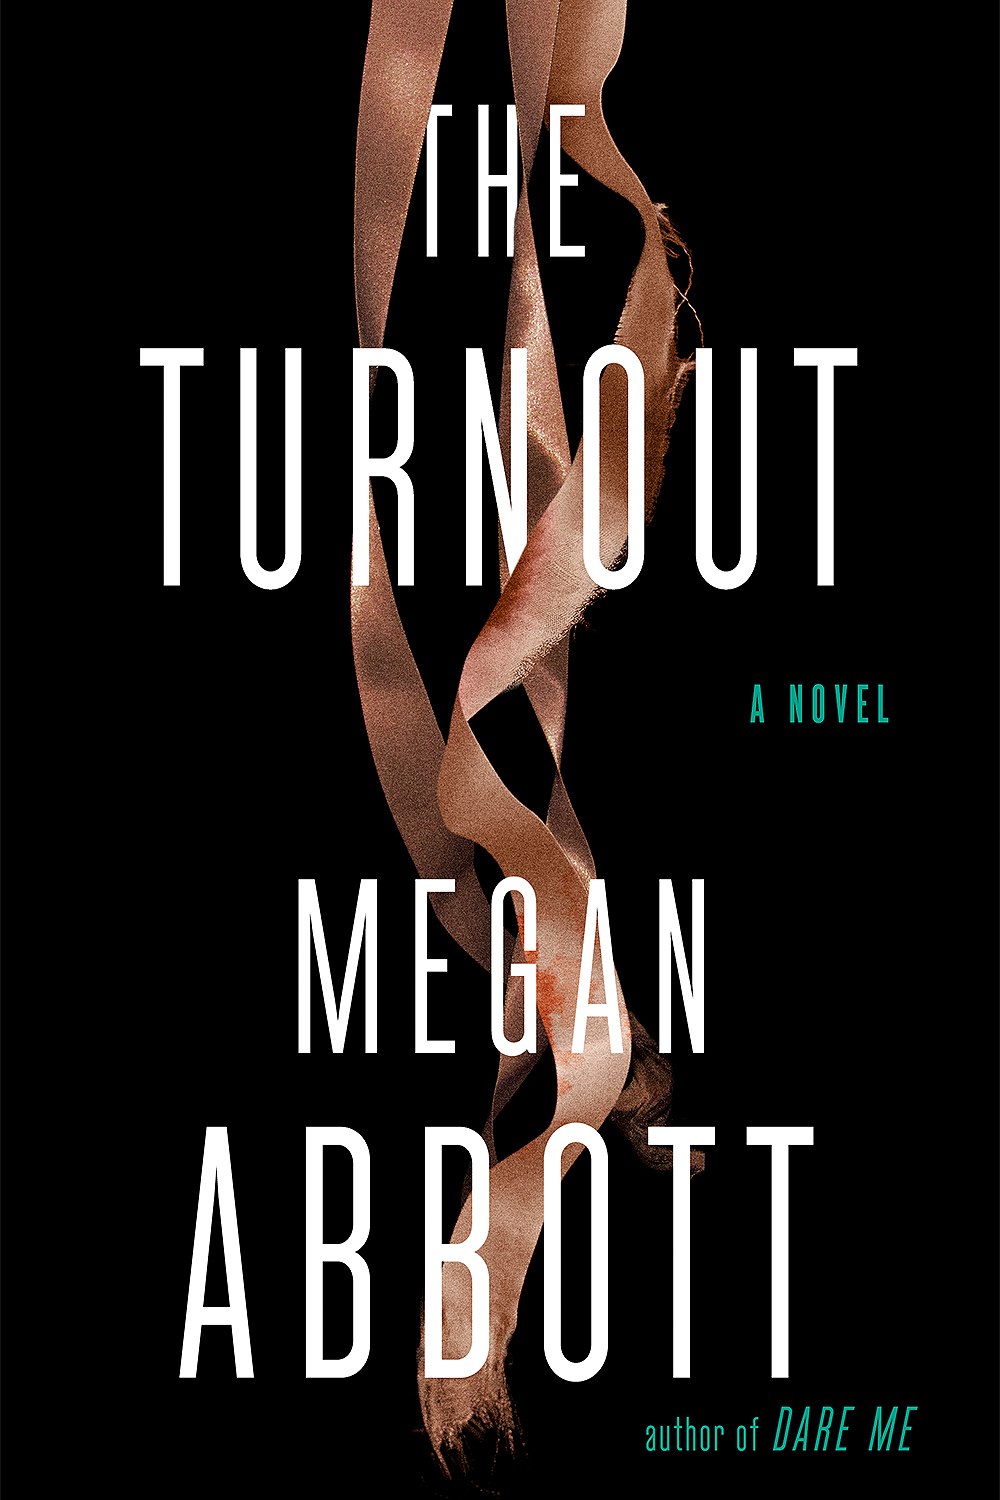 The Turnout by Megan Abbott